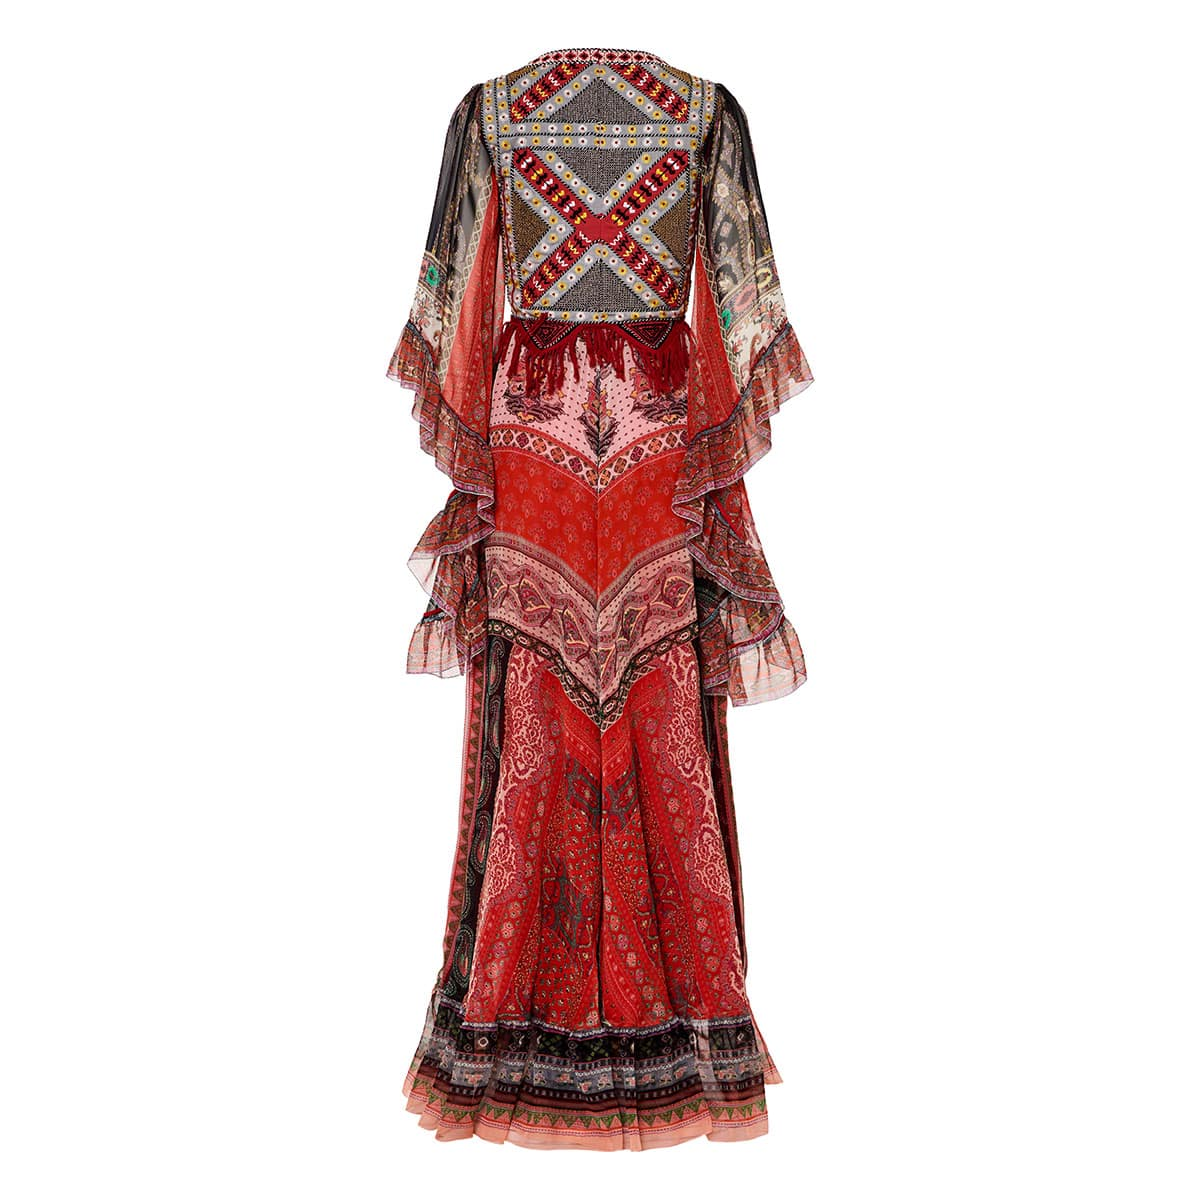 Our Rosie paisley embroidered long chiffon dress